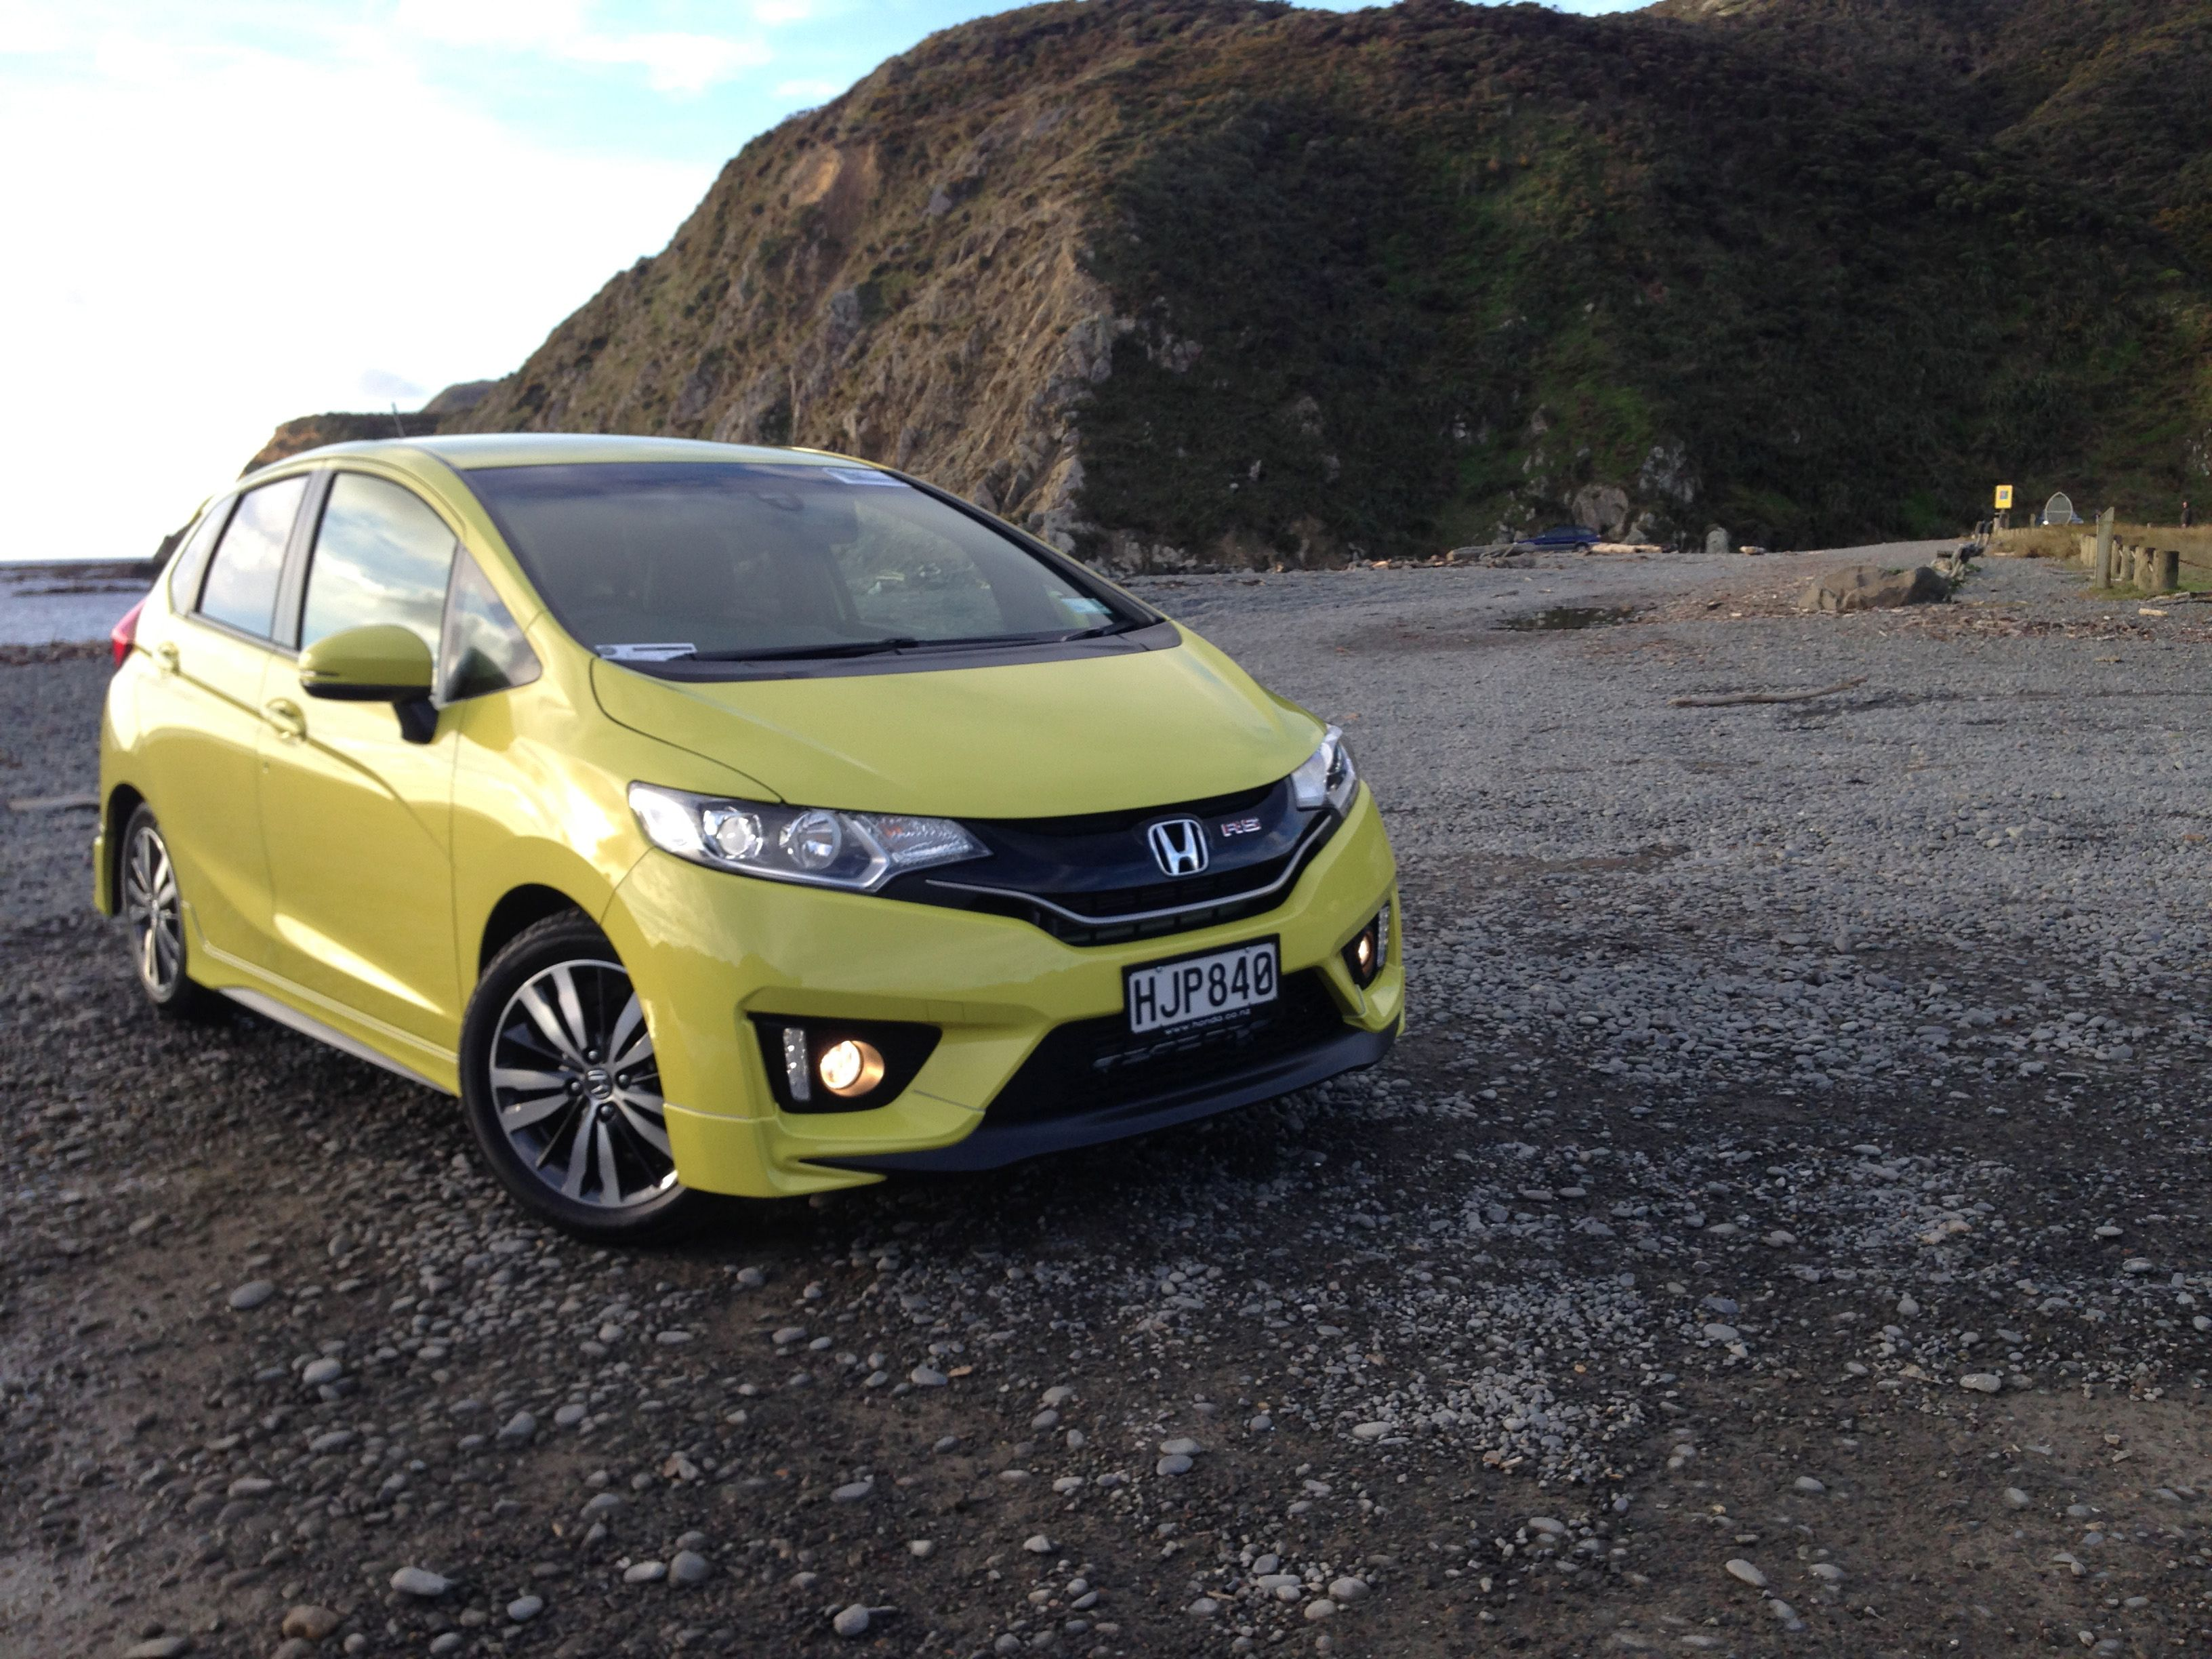 BeautifulHonda Jazz 2014 4k UHD Car Wallpapers